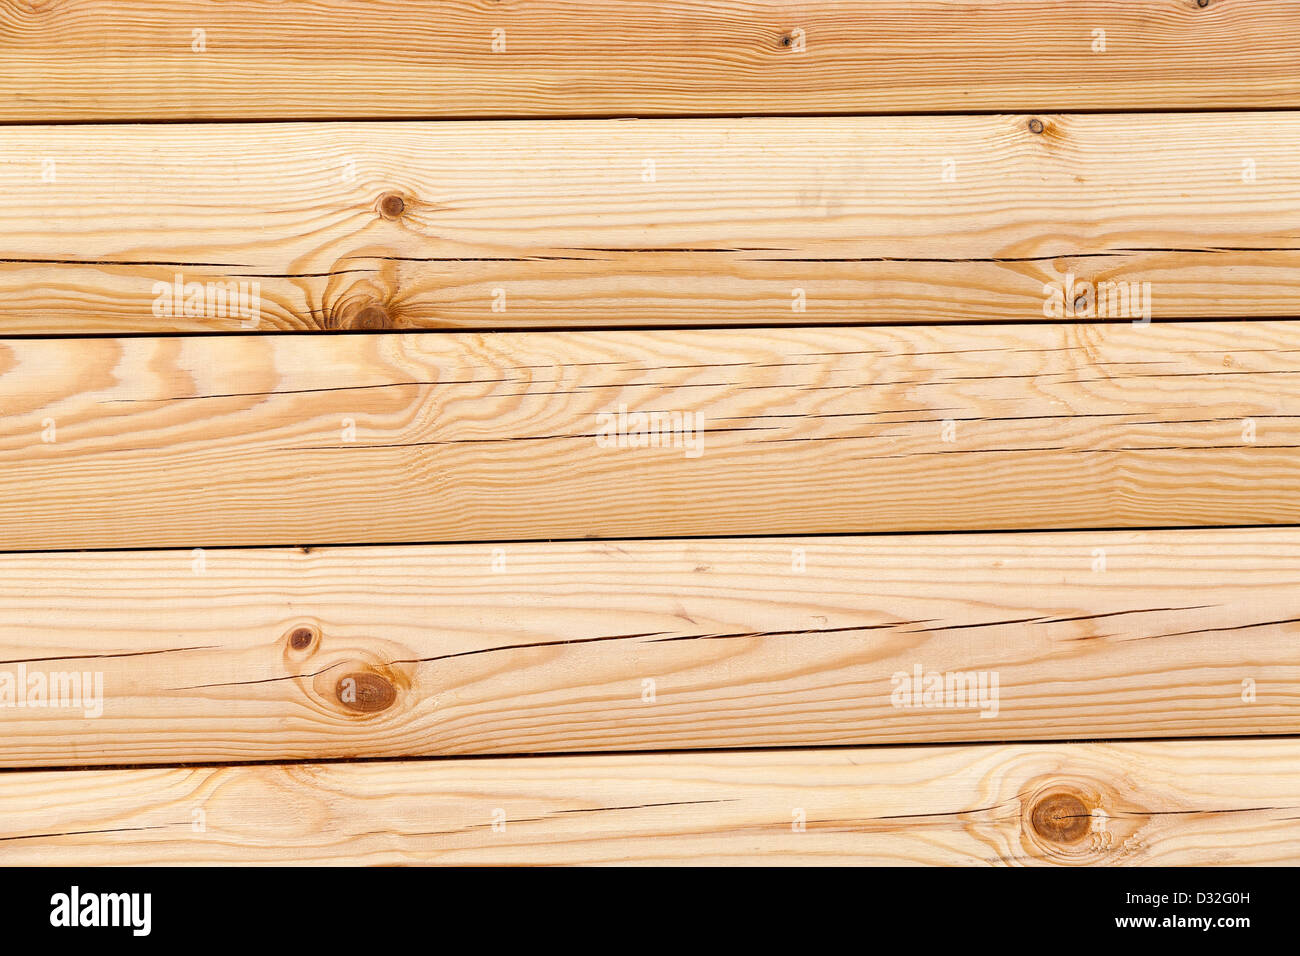 Yellow wood texture with natural patterns - Stock Image